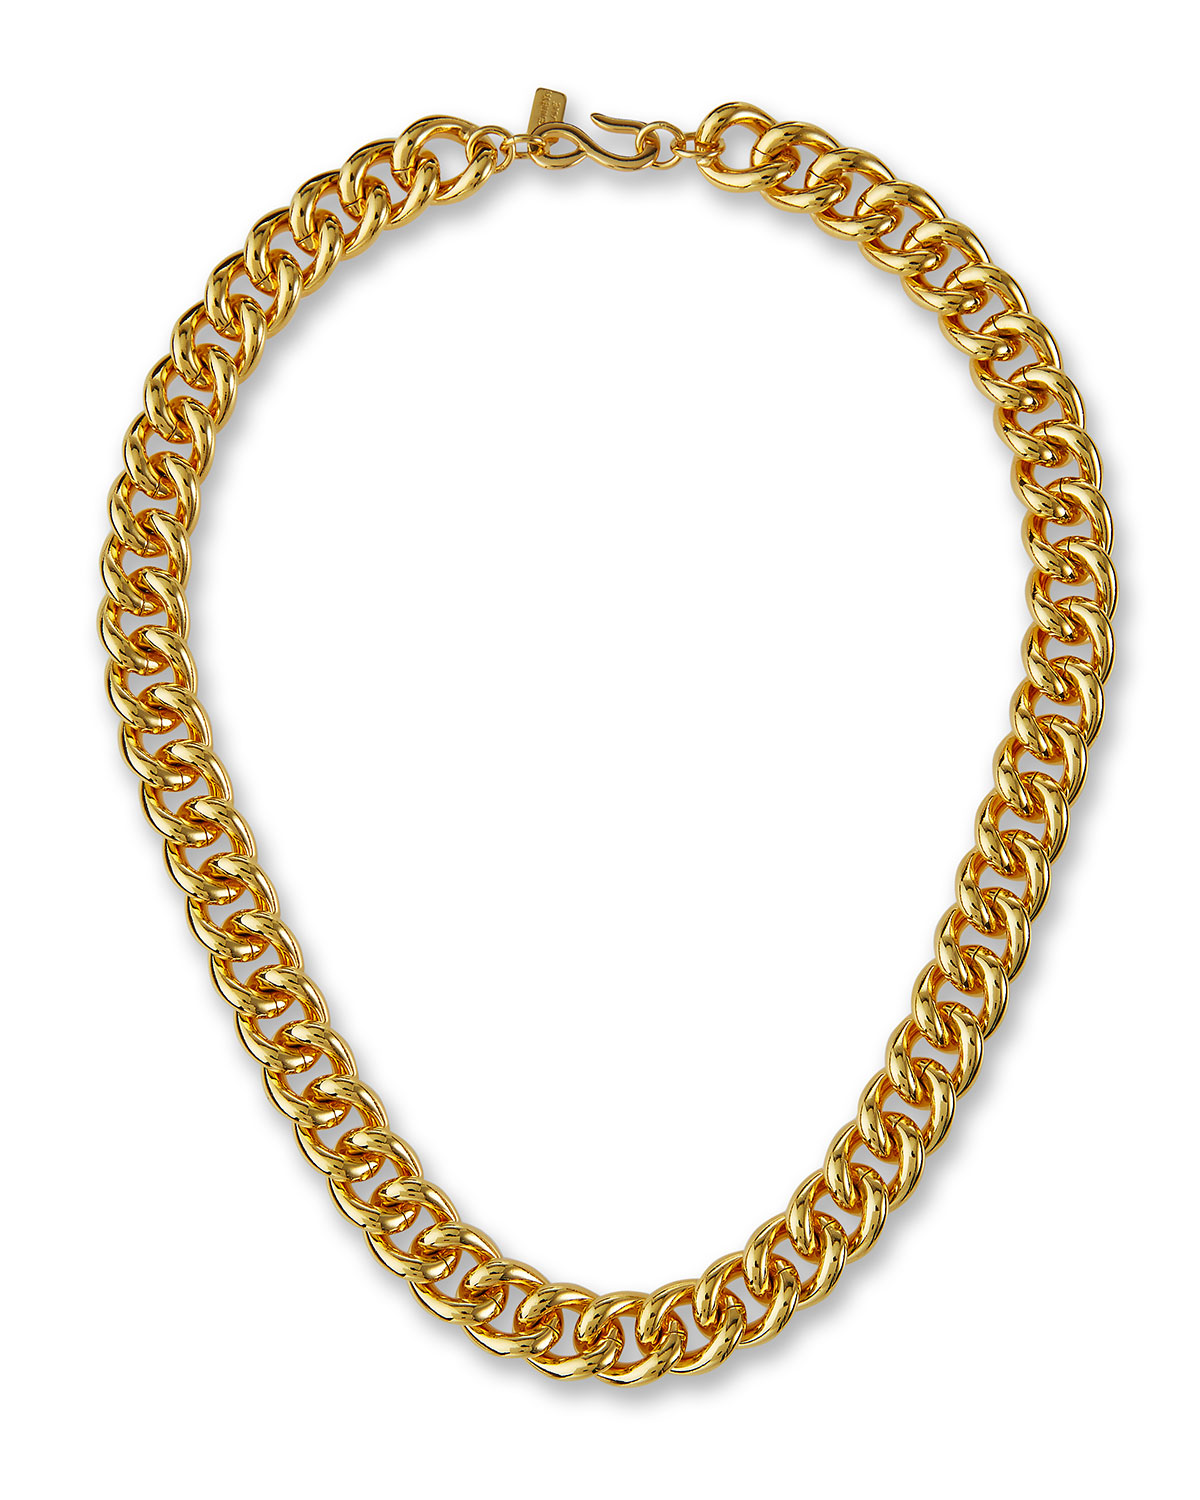 Polished Chain Necklace with Hook Clasp